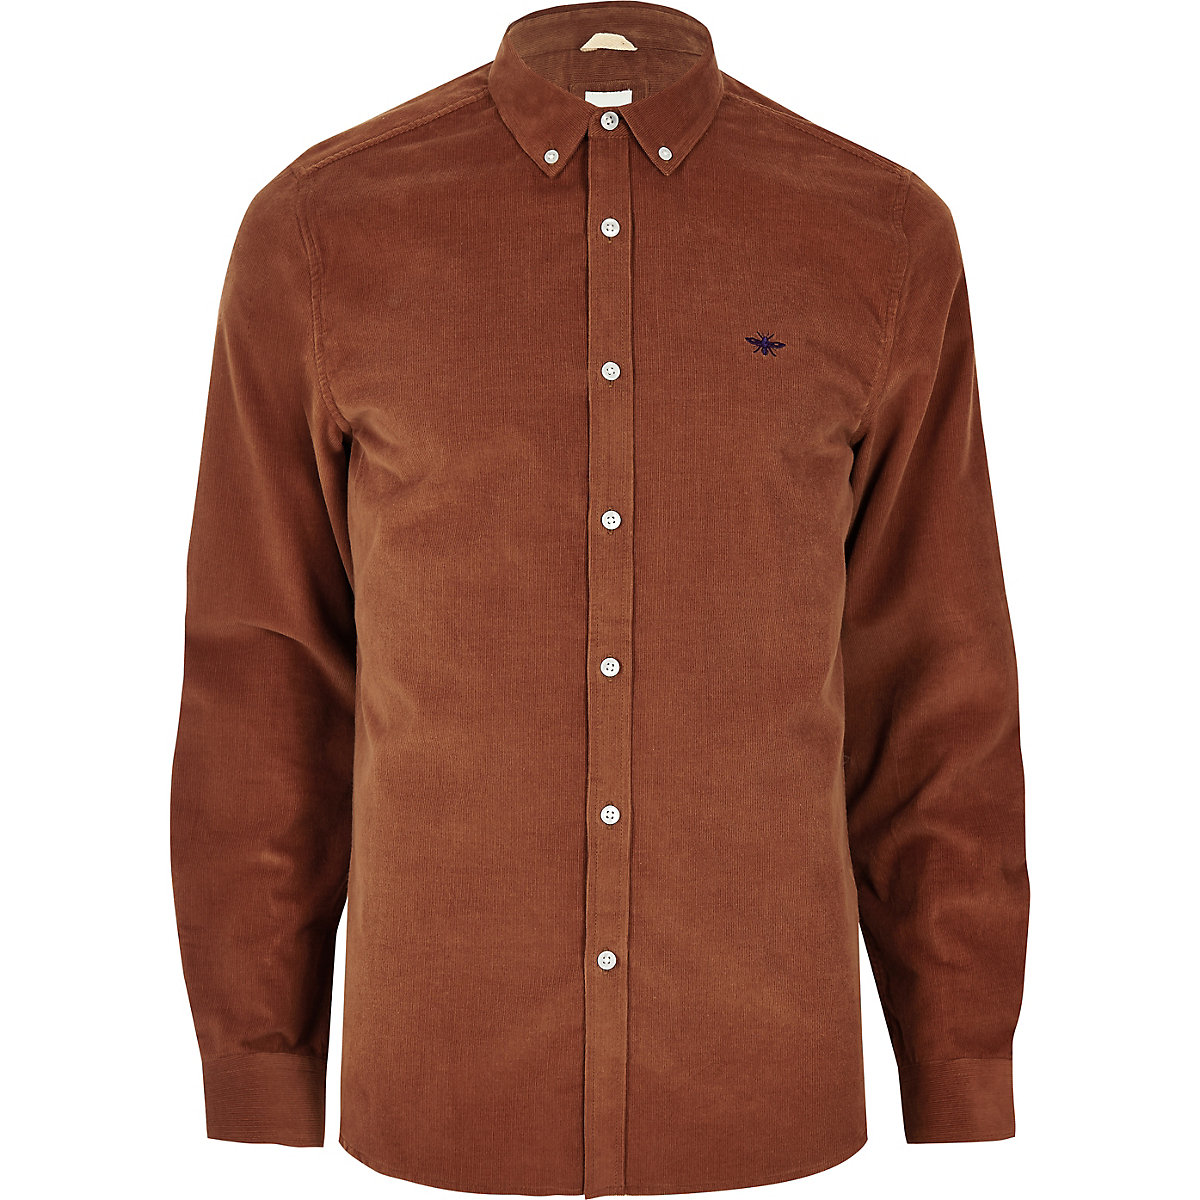 Brown cord wasp embroidered shirt